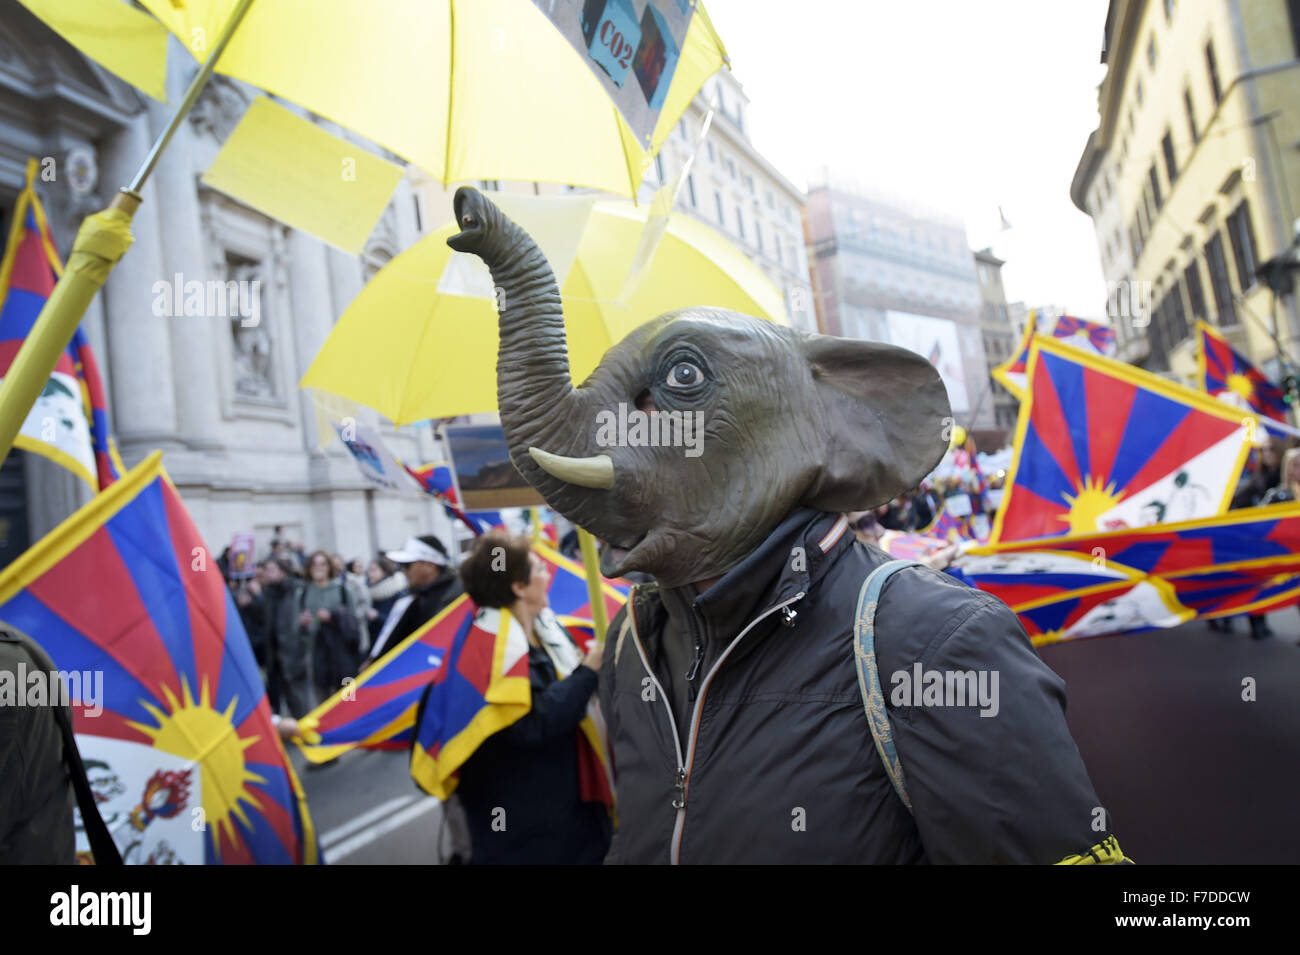 Nov. 29, 2015 - Europe, Italy, Rome, november 29, 2015 :Demonstrators march during a rally calling for action on - Stock Image